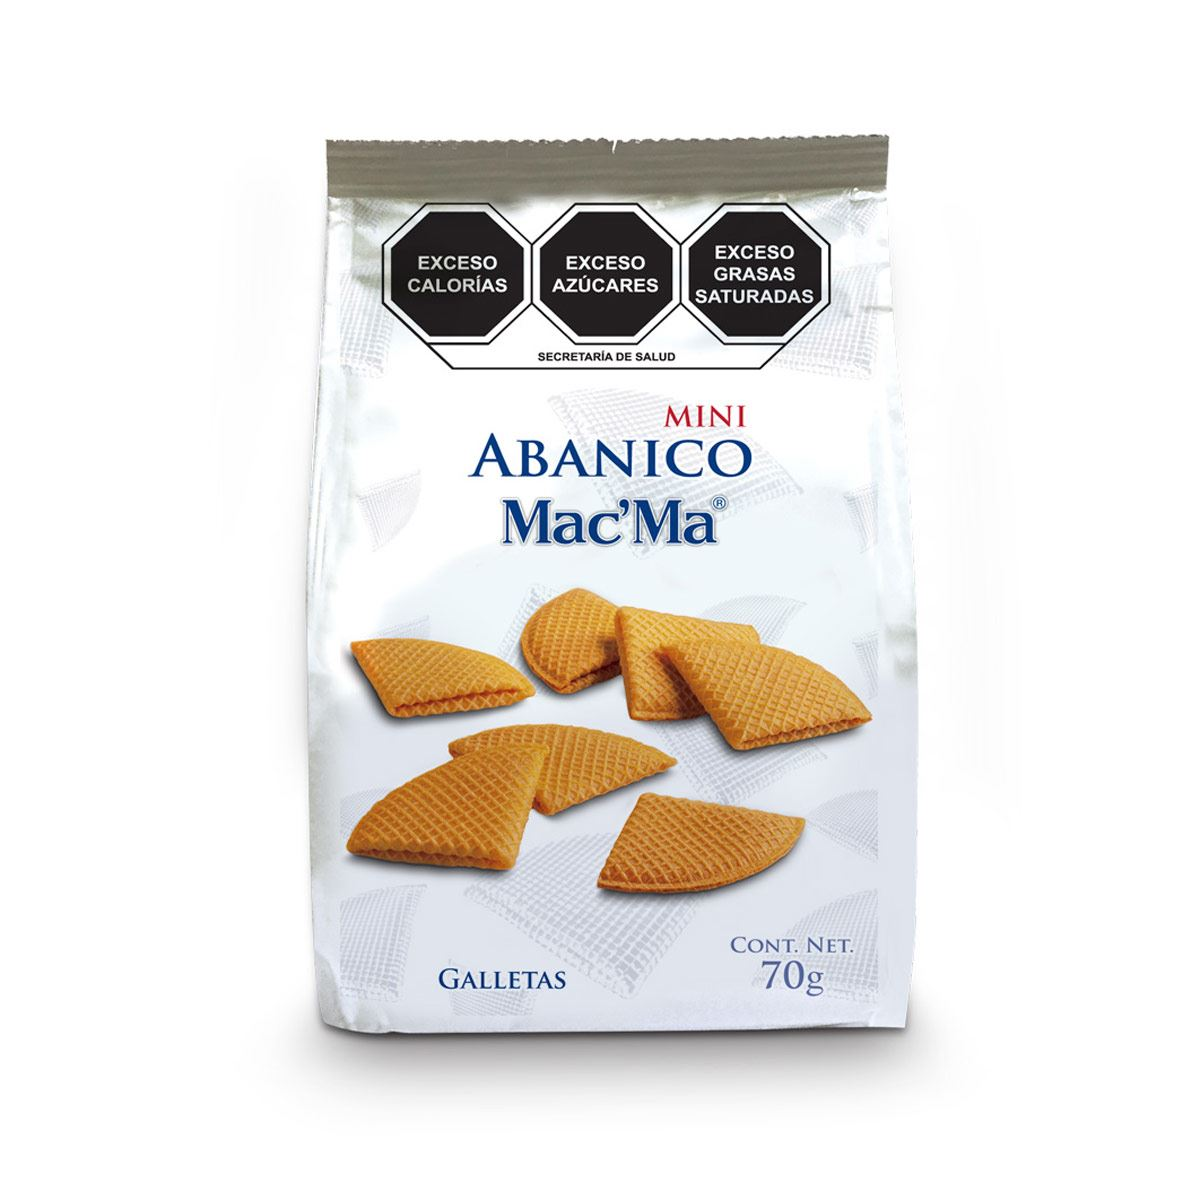 Bolsa de Galletas Mini Abanico Mac' Ma 70g